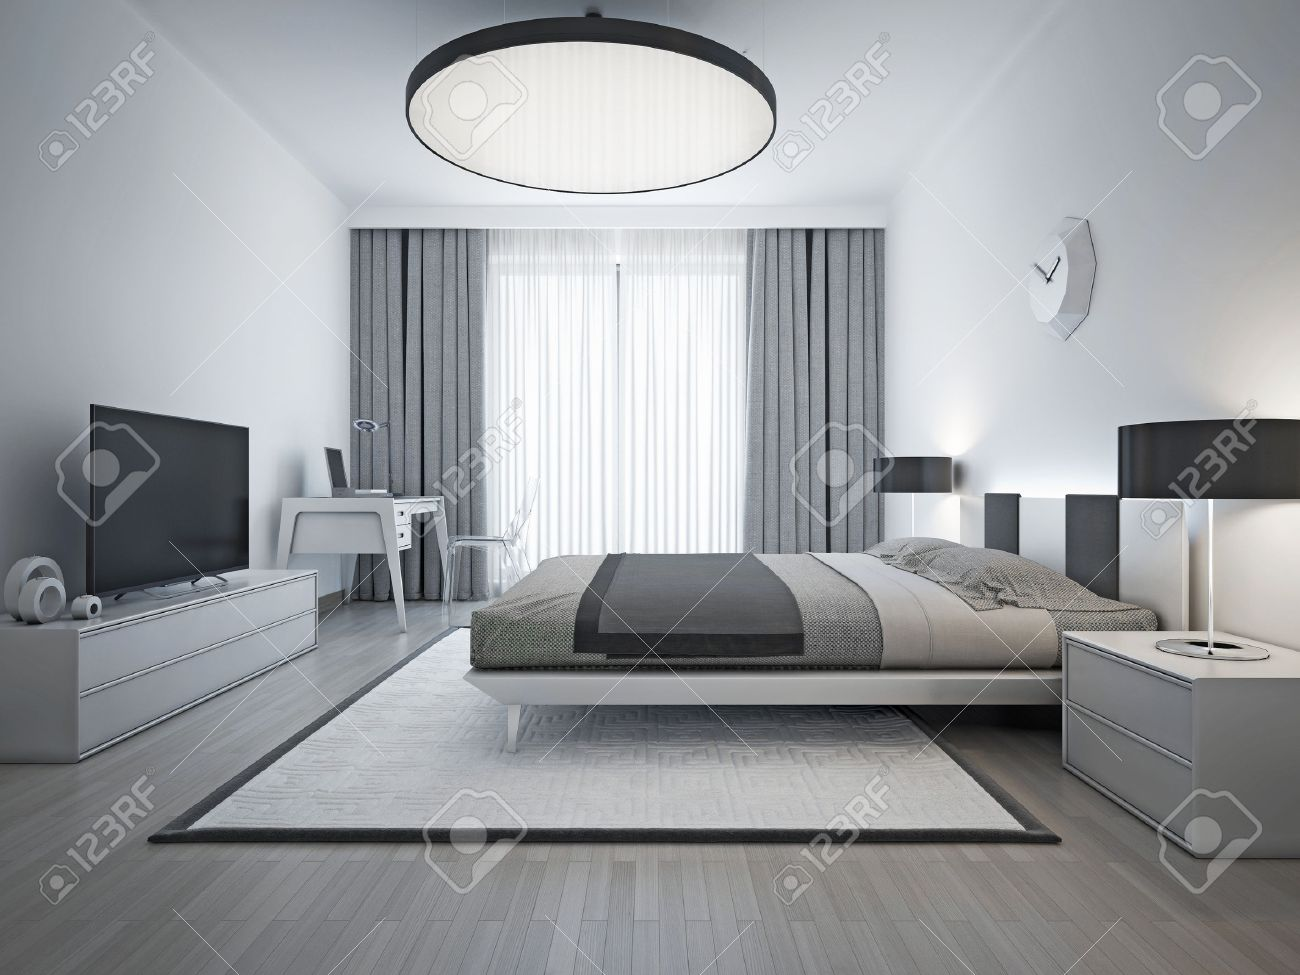 Elegant Bedroom Contemporary Style. Monochrome Interior Bedroom With Elegant  Double Bed And White Patterned Carpet